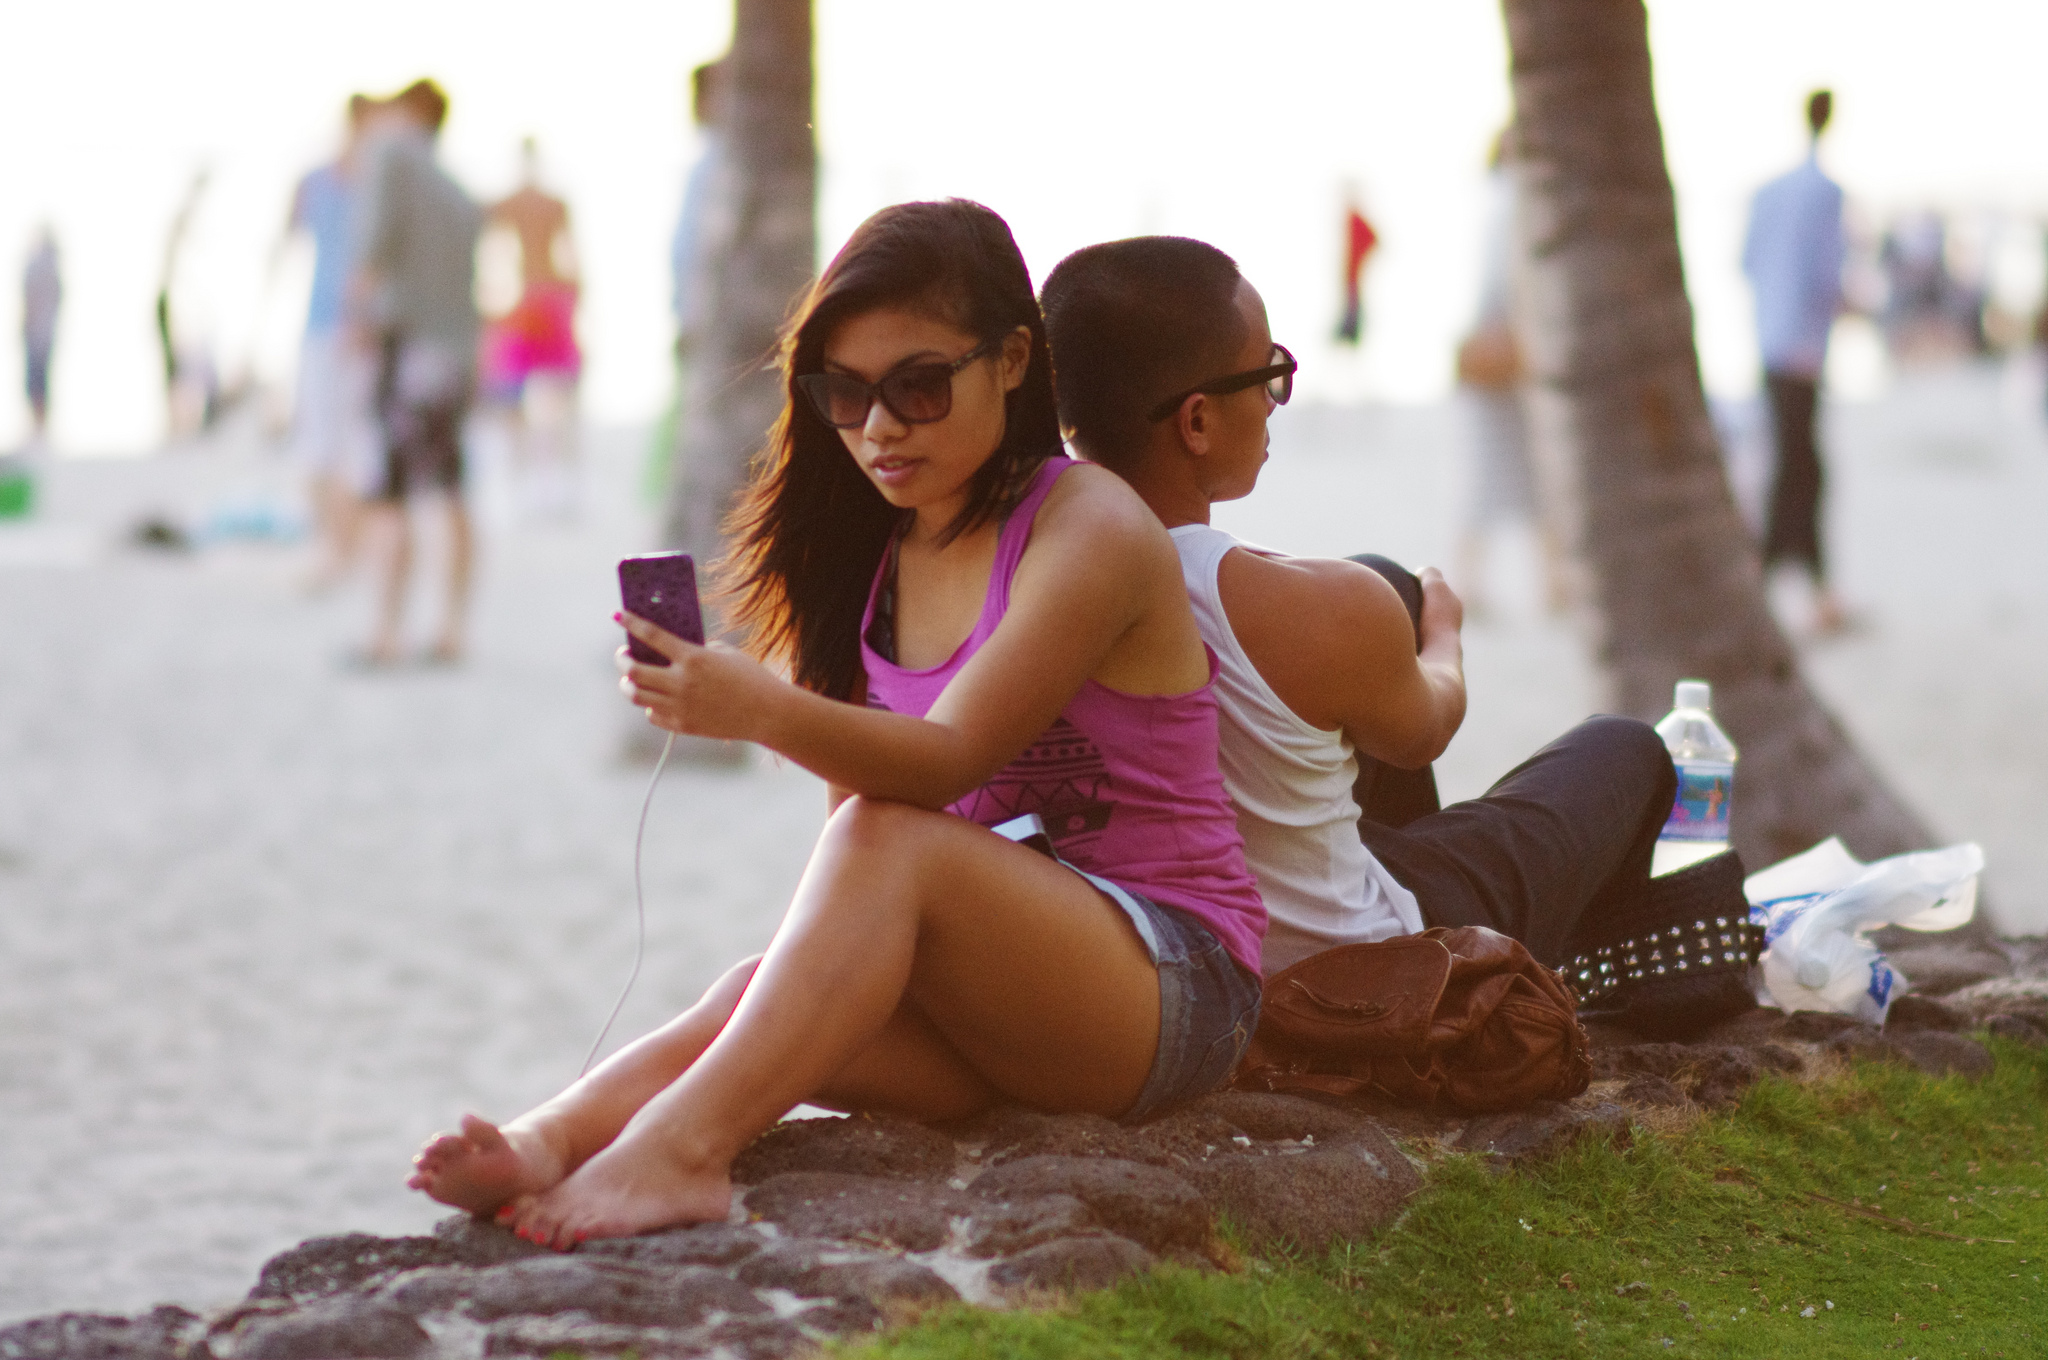 Are Teens Today More Narcissistic Than Previous Generations?